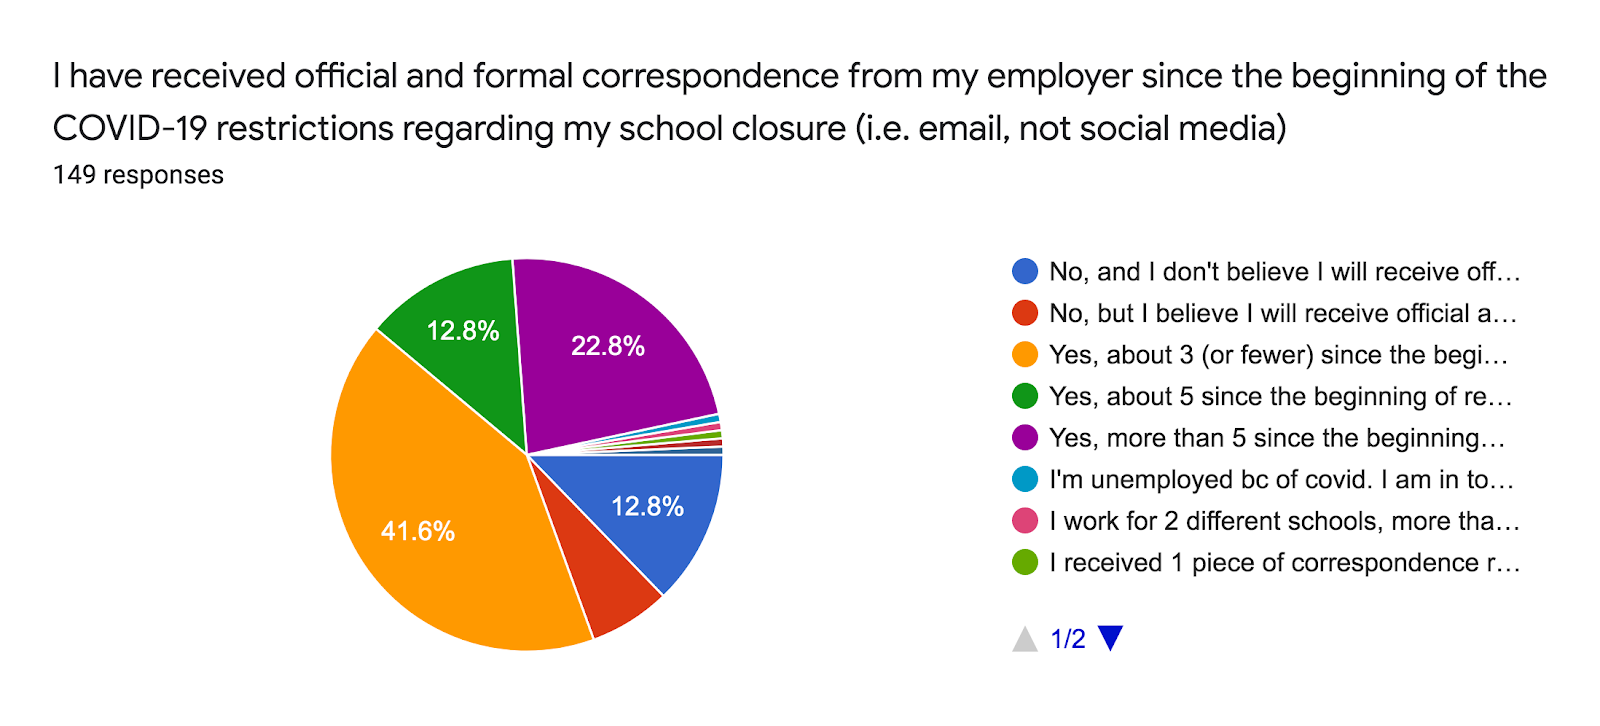 Forms response chart. Question title: I have received official and formal correspondence from my employer since the beginning of the COVID-19 restrictions regarding my school closure (i.e. email, not social media). Number of responses: 149 responses.